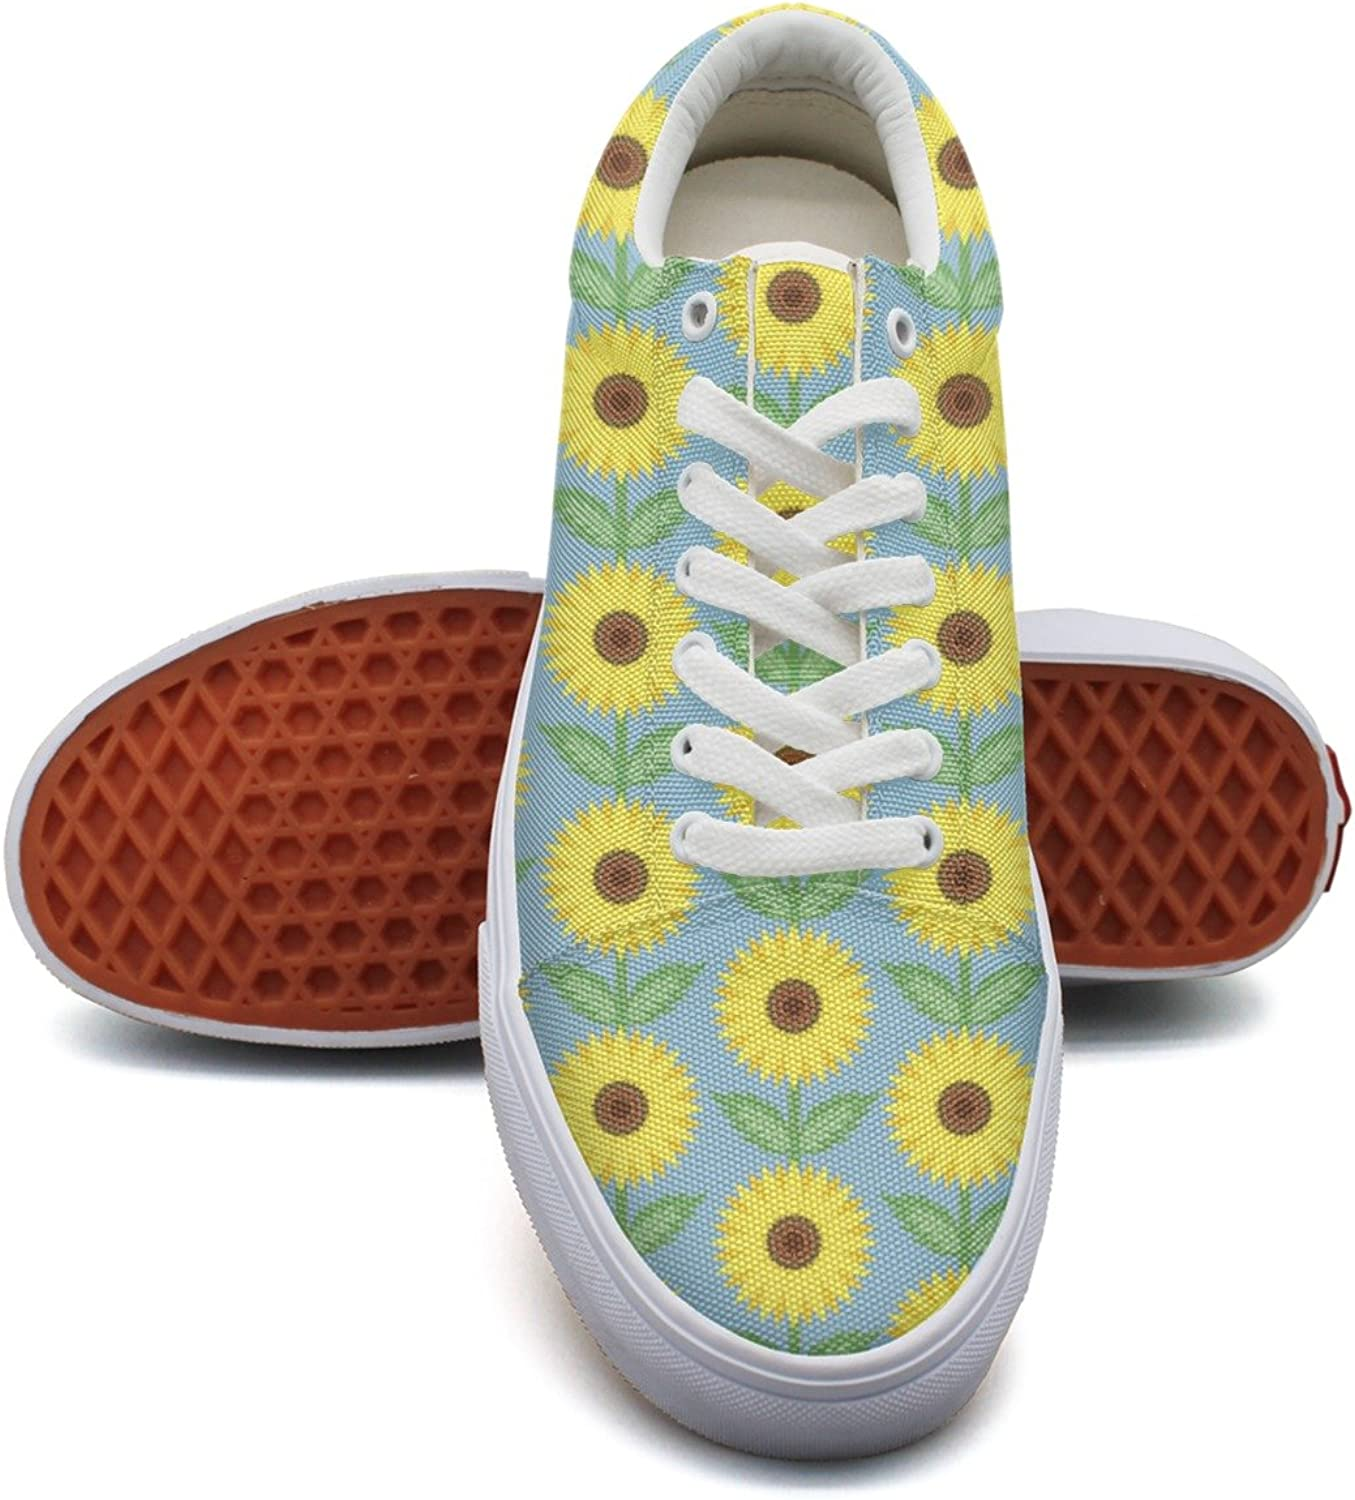 Feenfling Sunflower Floral Womens Denim Canvas Lace up Dhoes Low Top Popular Cloth shoes for Women's